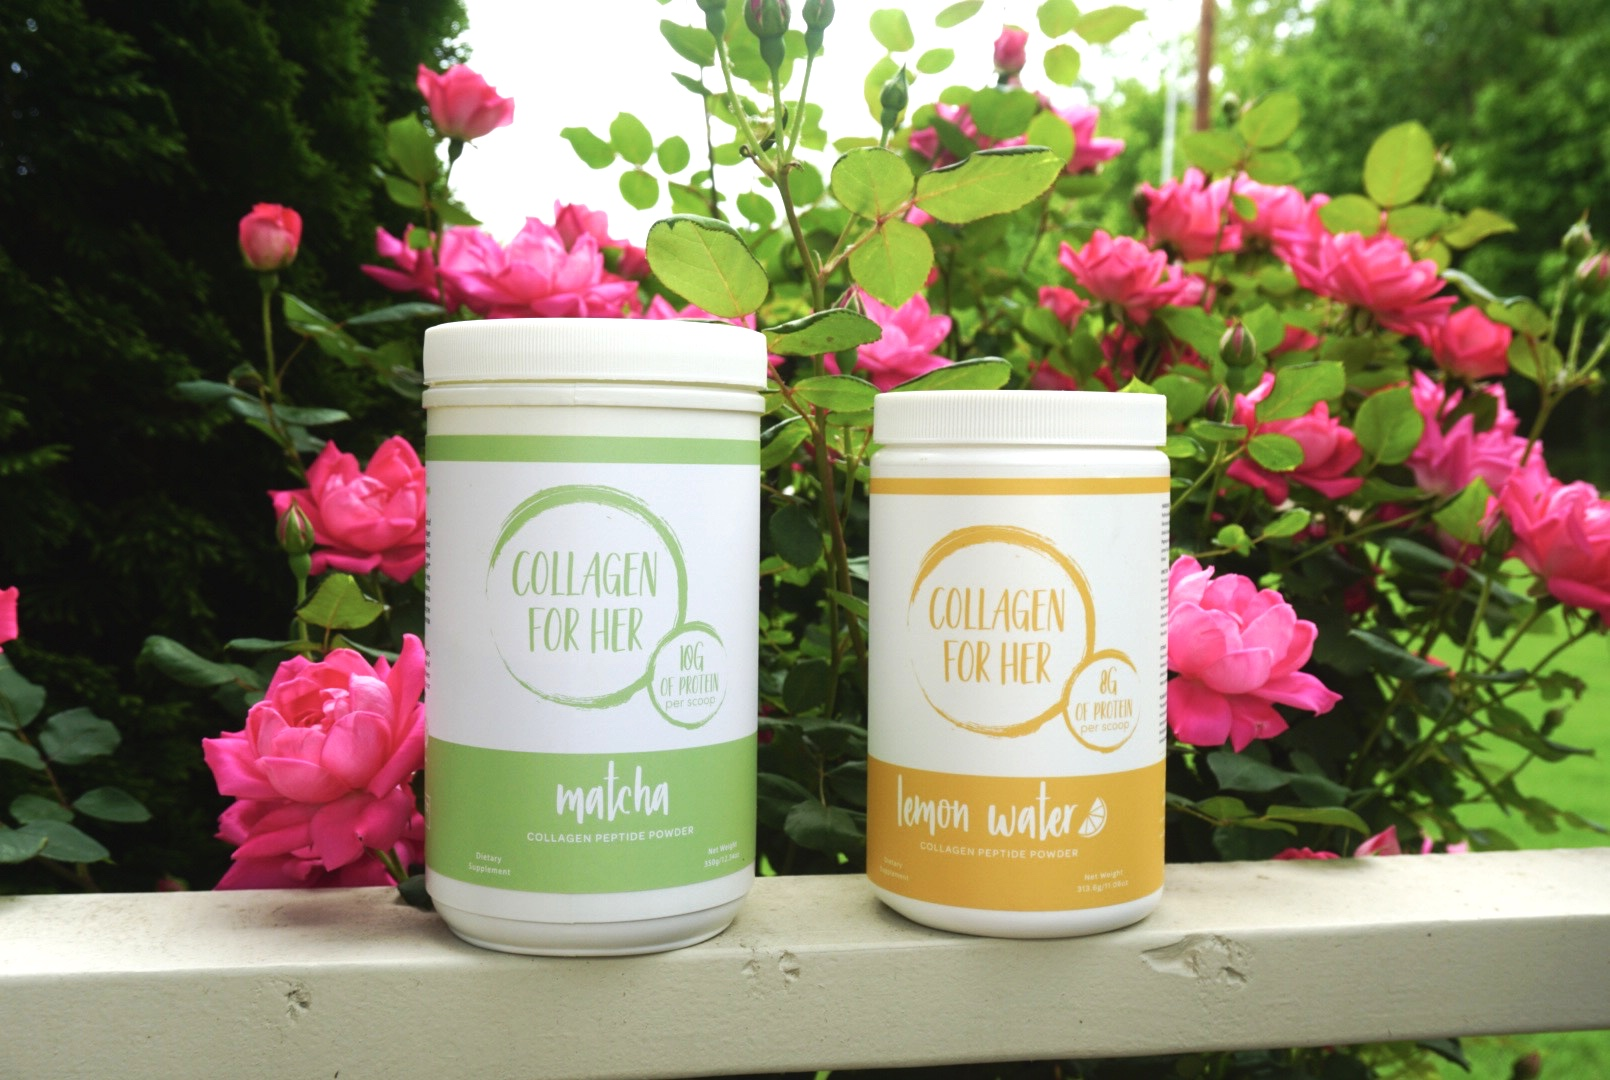 Collagen for Her Matcha and Lemon Water Review - Yoga Mama Bear